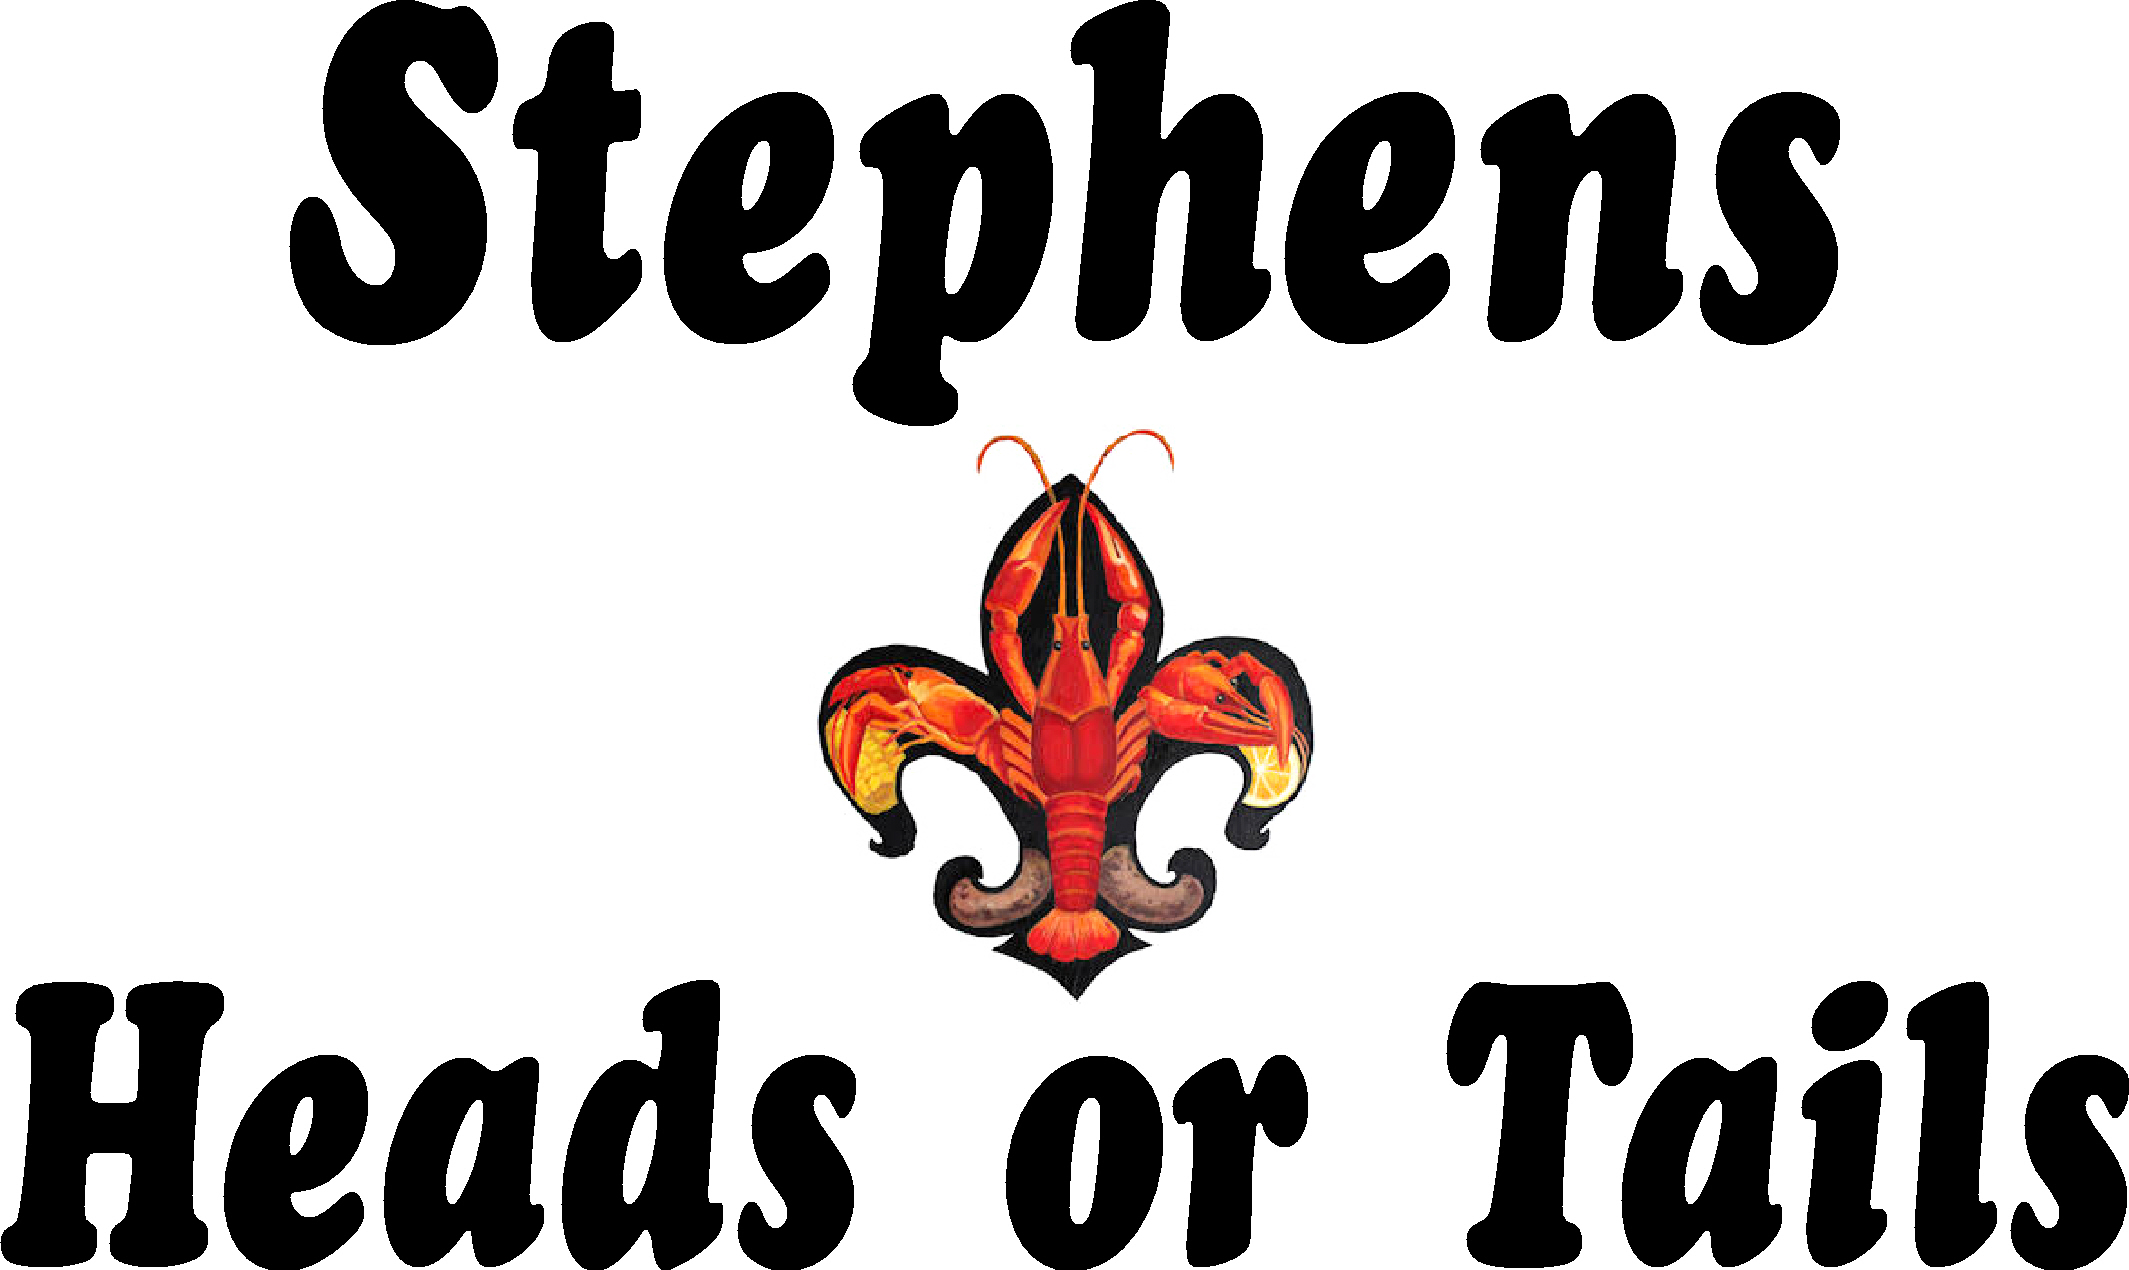 Stephens Heads or Tails